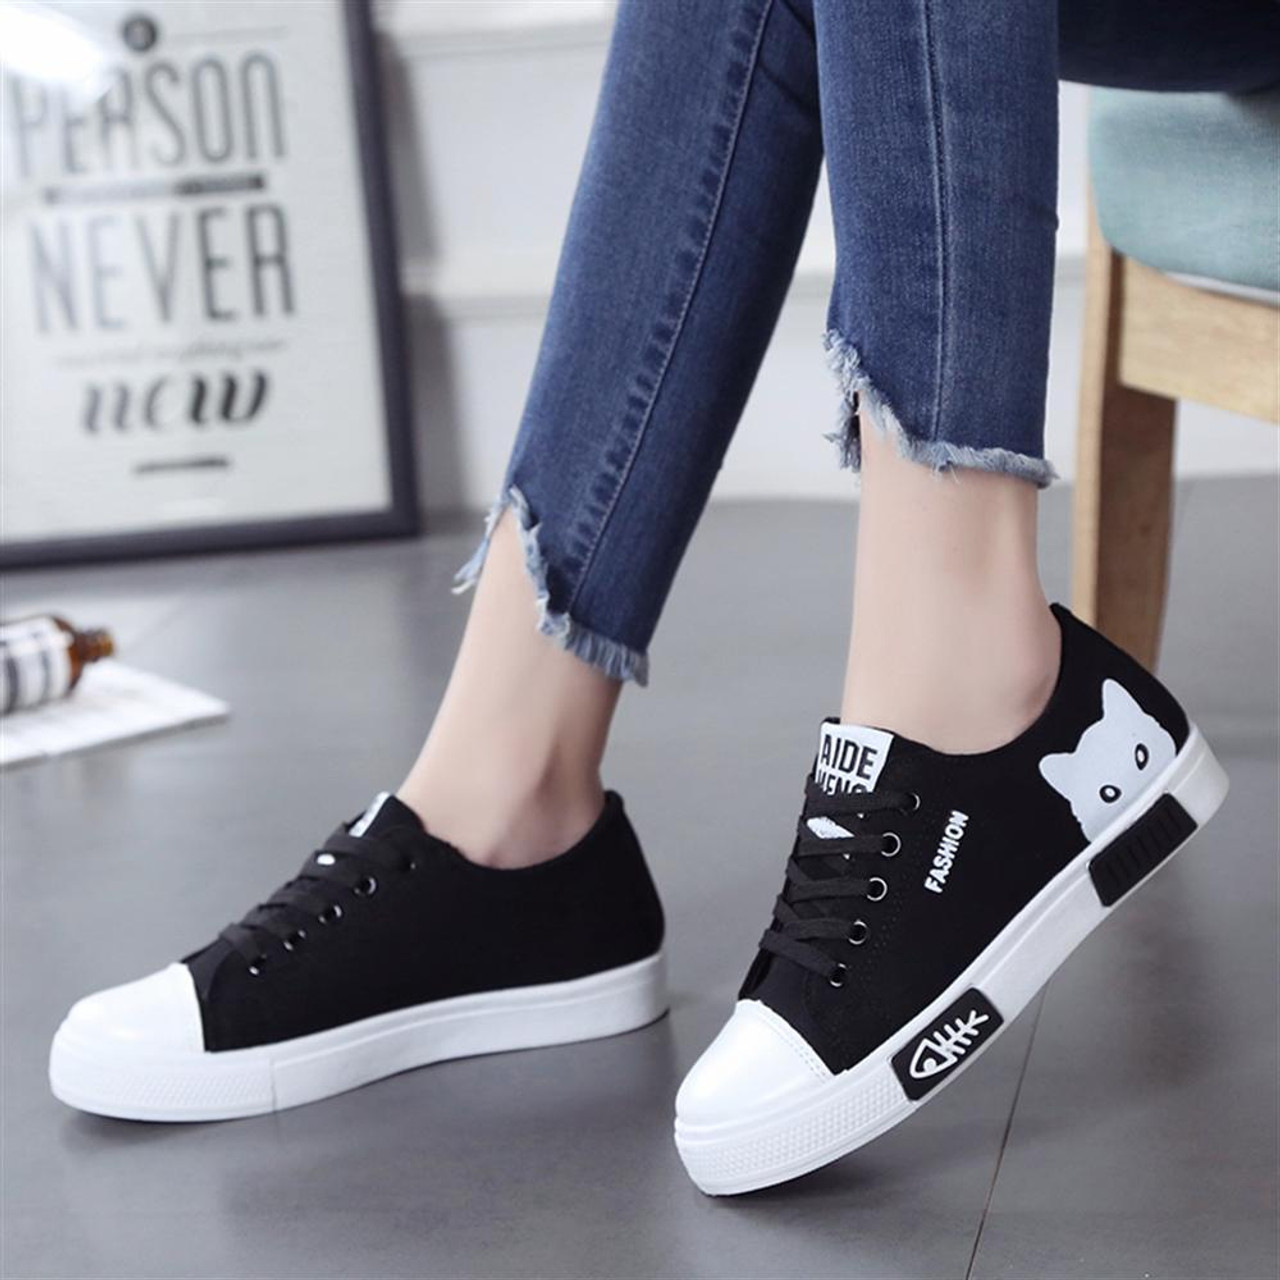 Spring Fall 2018 New Shoes Women Flats Lace-up Casual Canvas Shoes Women  Breathable White Platform tenis feminino - OnshopDeals.Com 74182abfd0d3